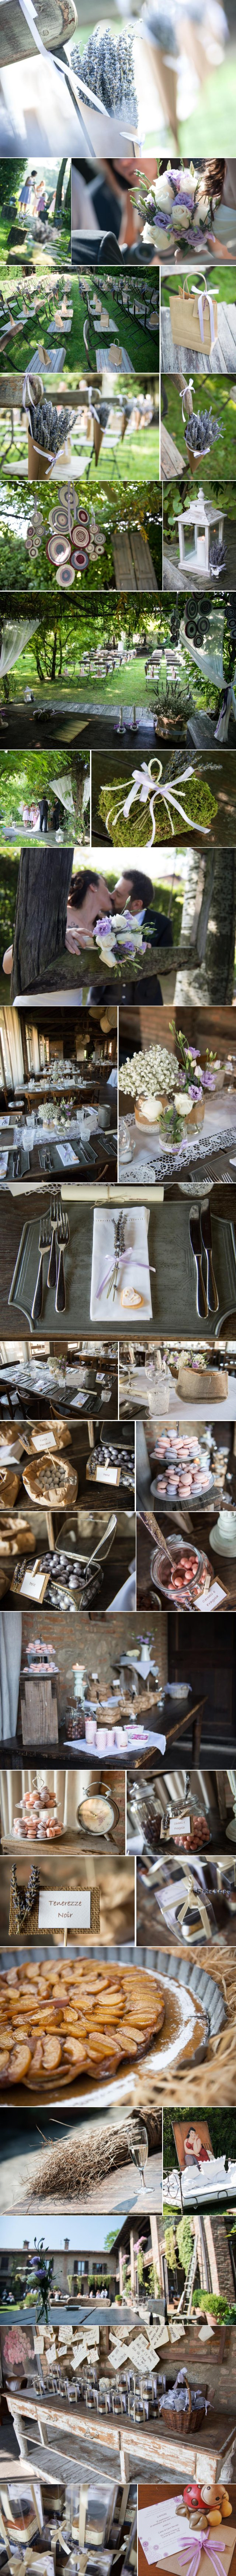 Matrimonio Lavanda Country Chic